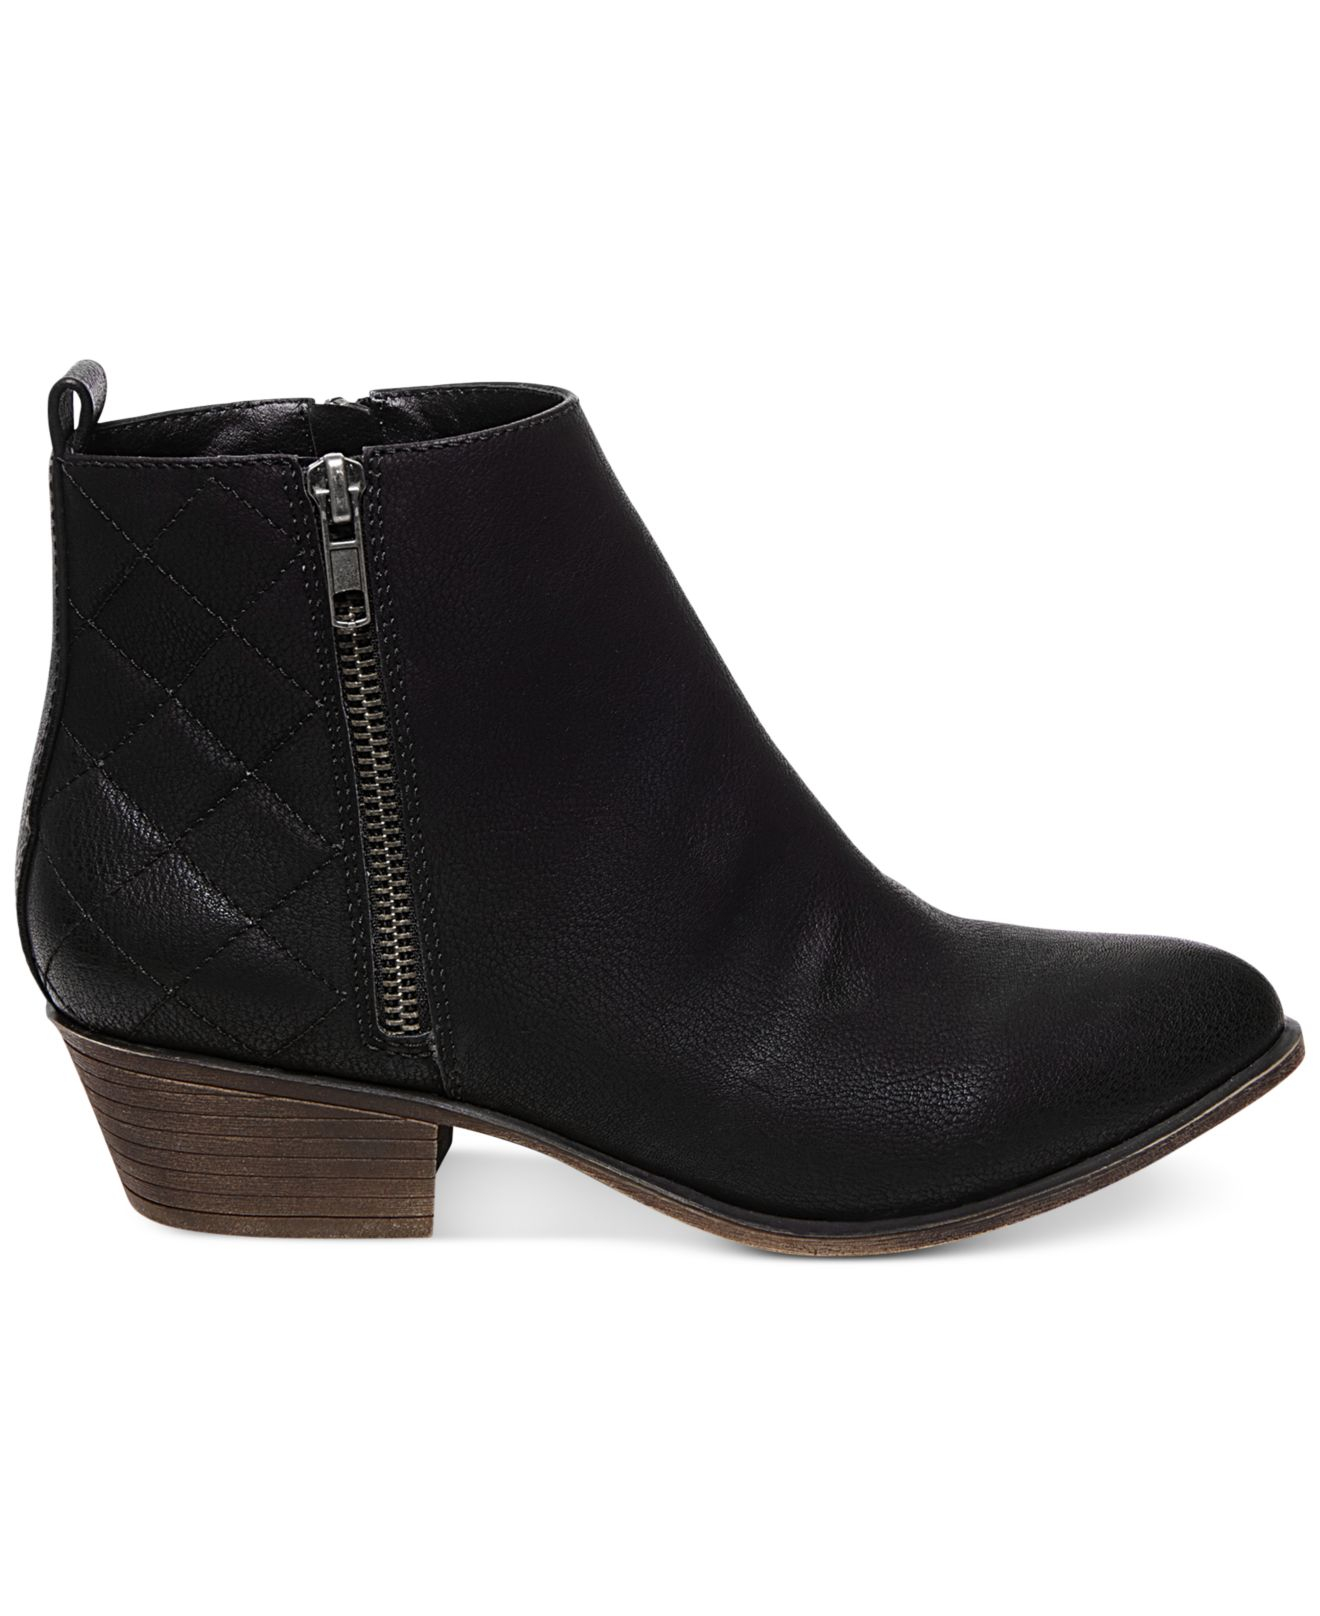 Madden Girl Holywood Quilted Booties In Black Lyst